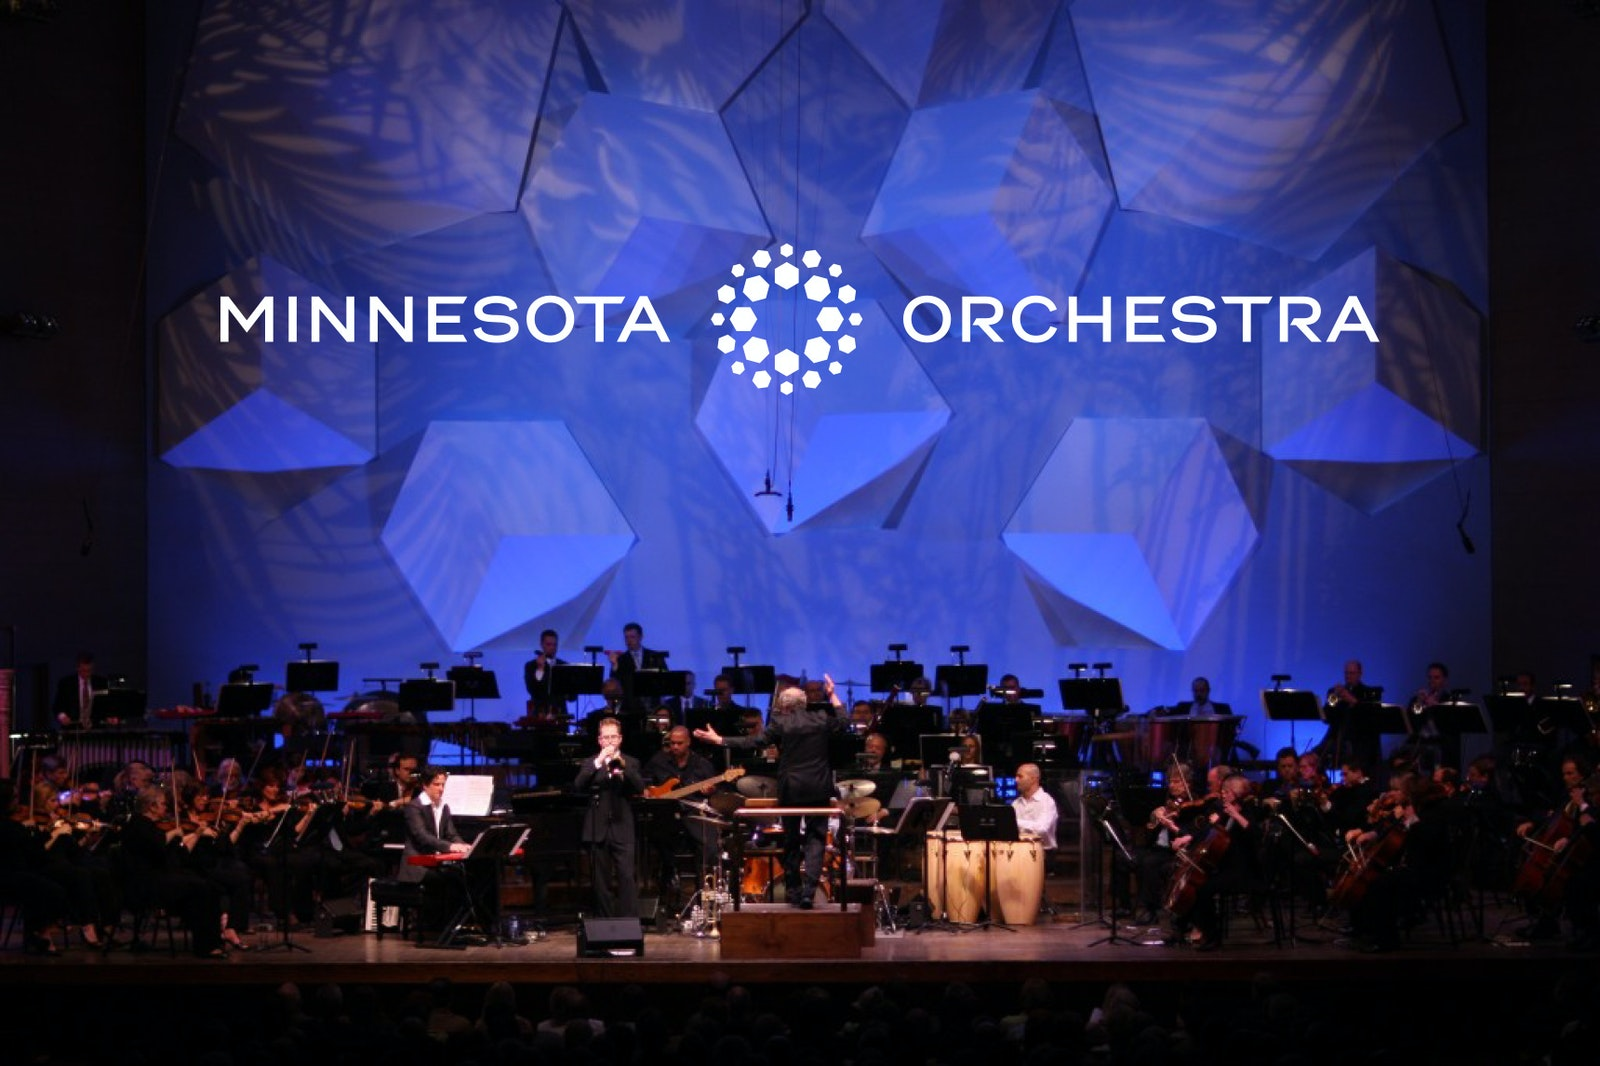 Mn Orchestra stage